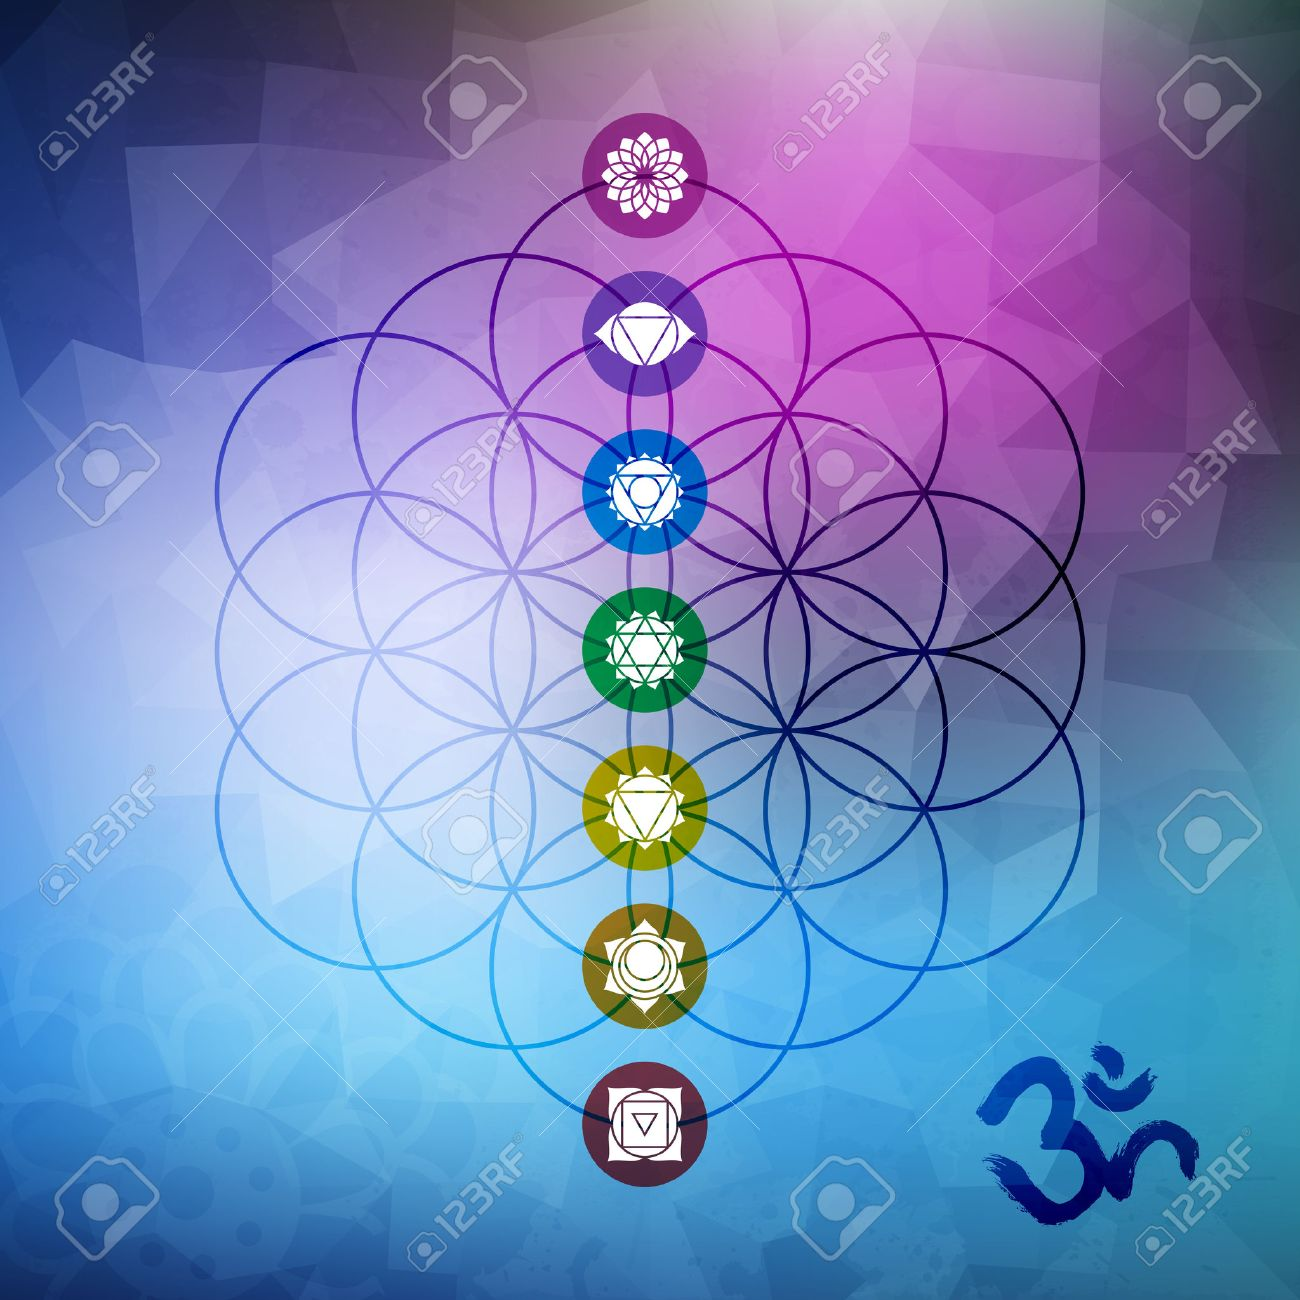 72 732 Flower Of Life Cliparts Stock Vector And Royalty Free